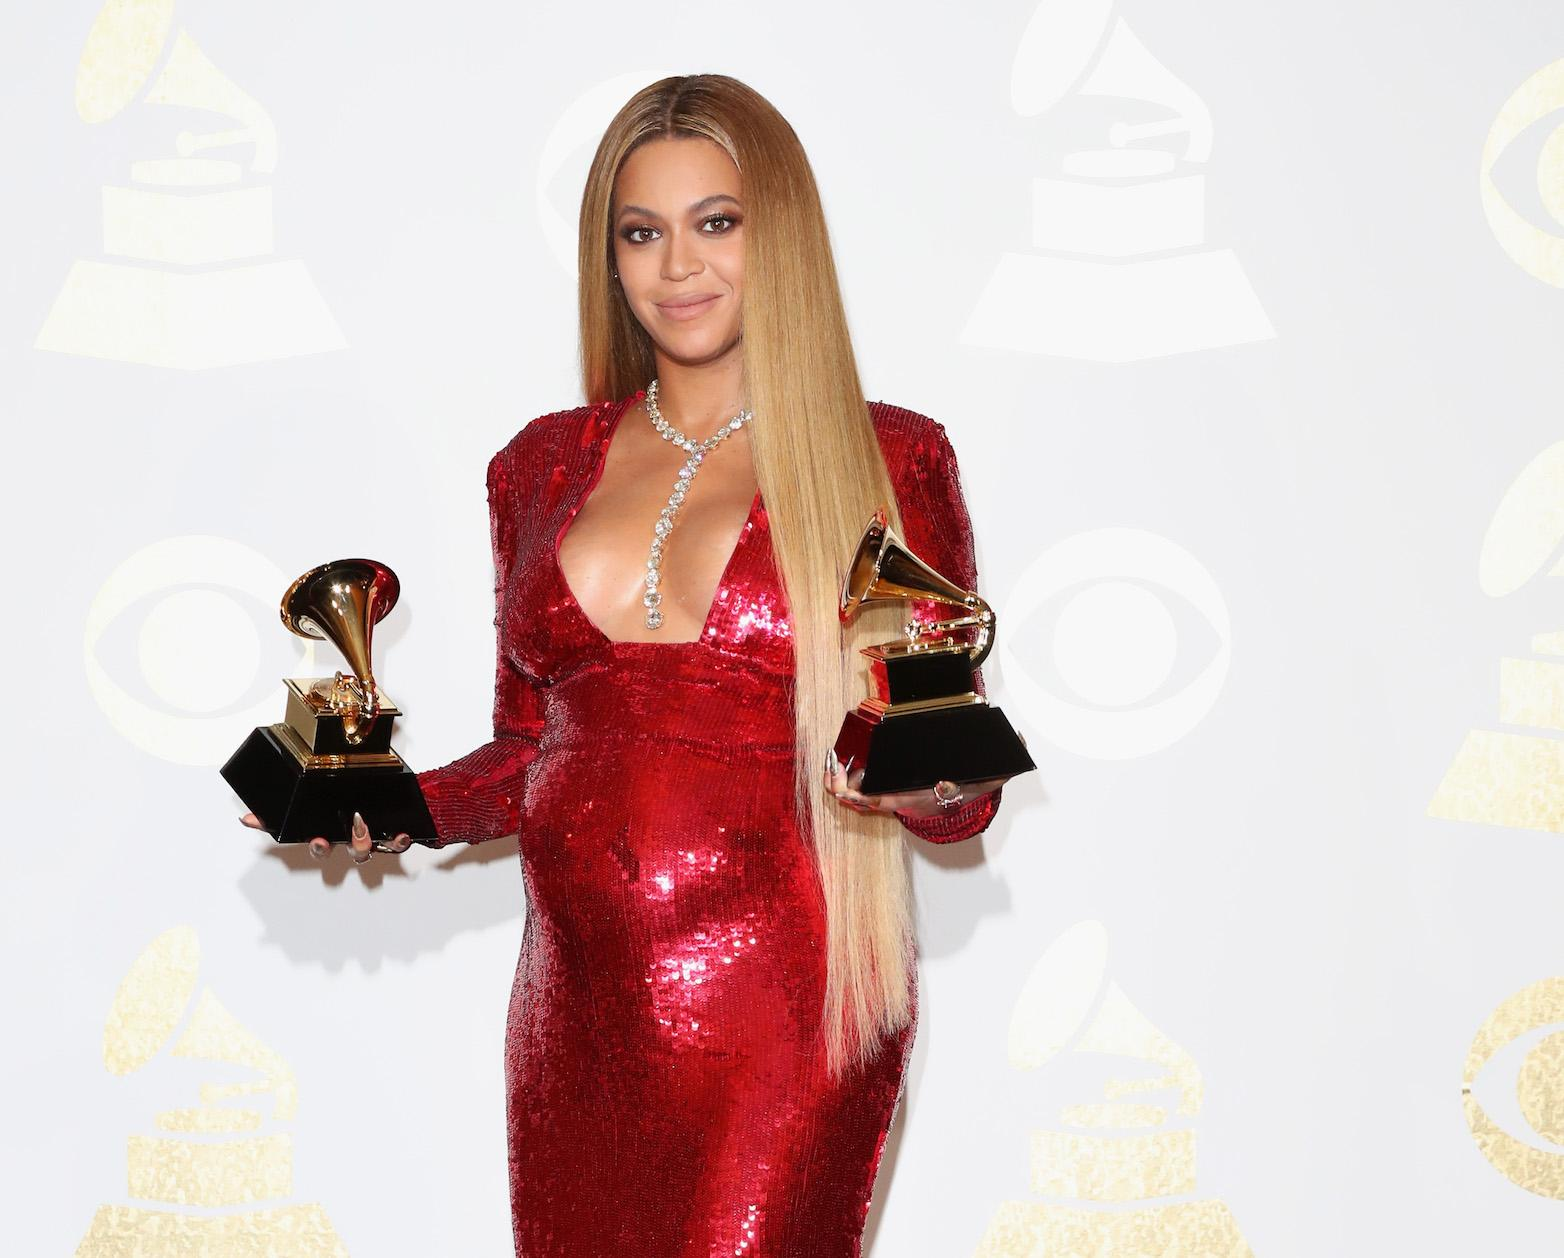 Beyoncé smiles as she holds two Grammy Awards while wearing a sequined red maternity gown.